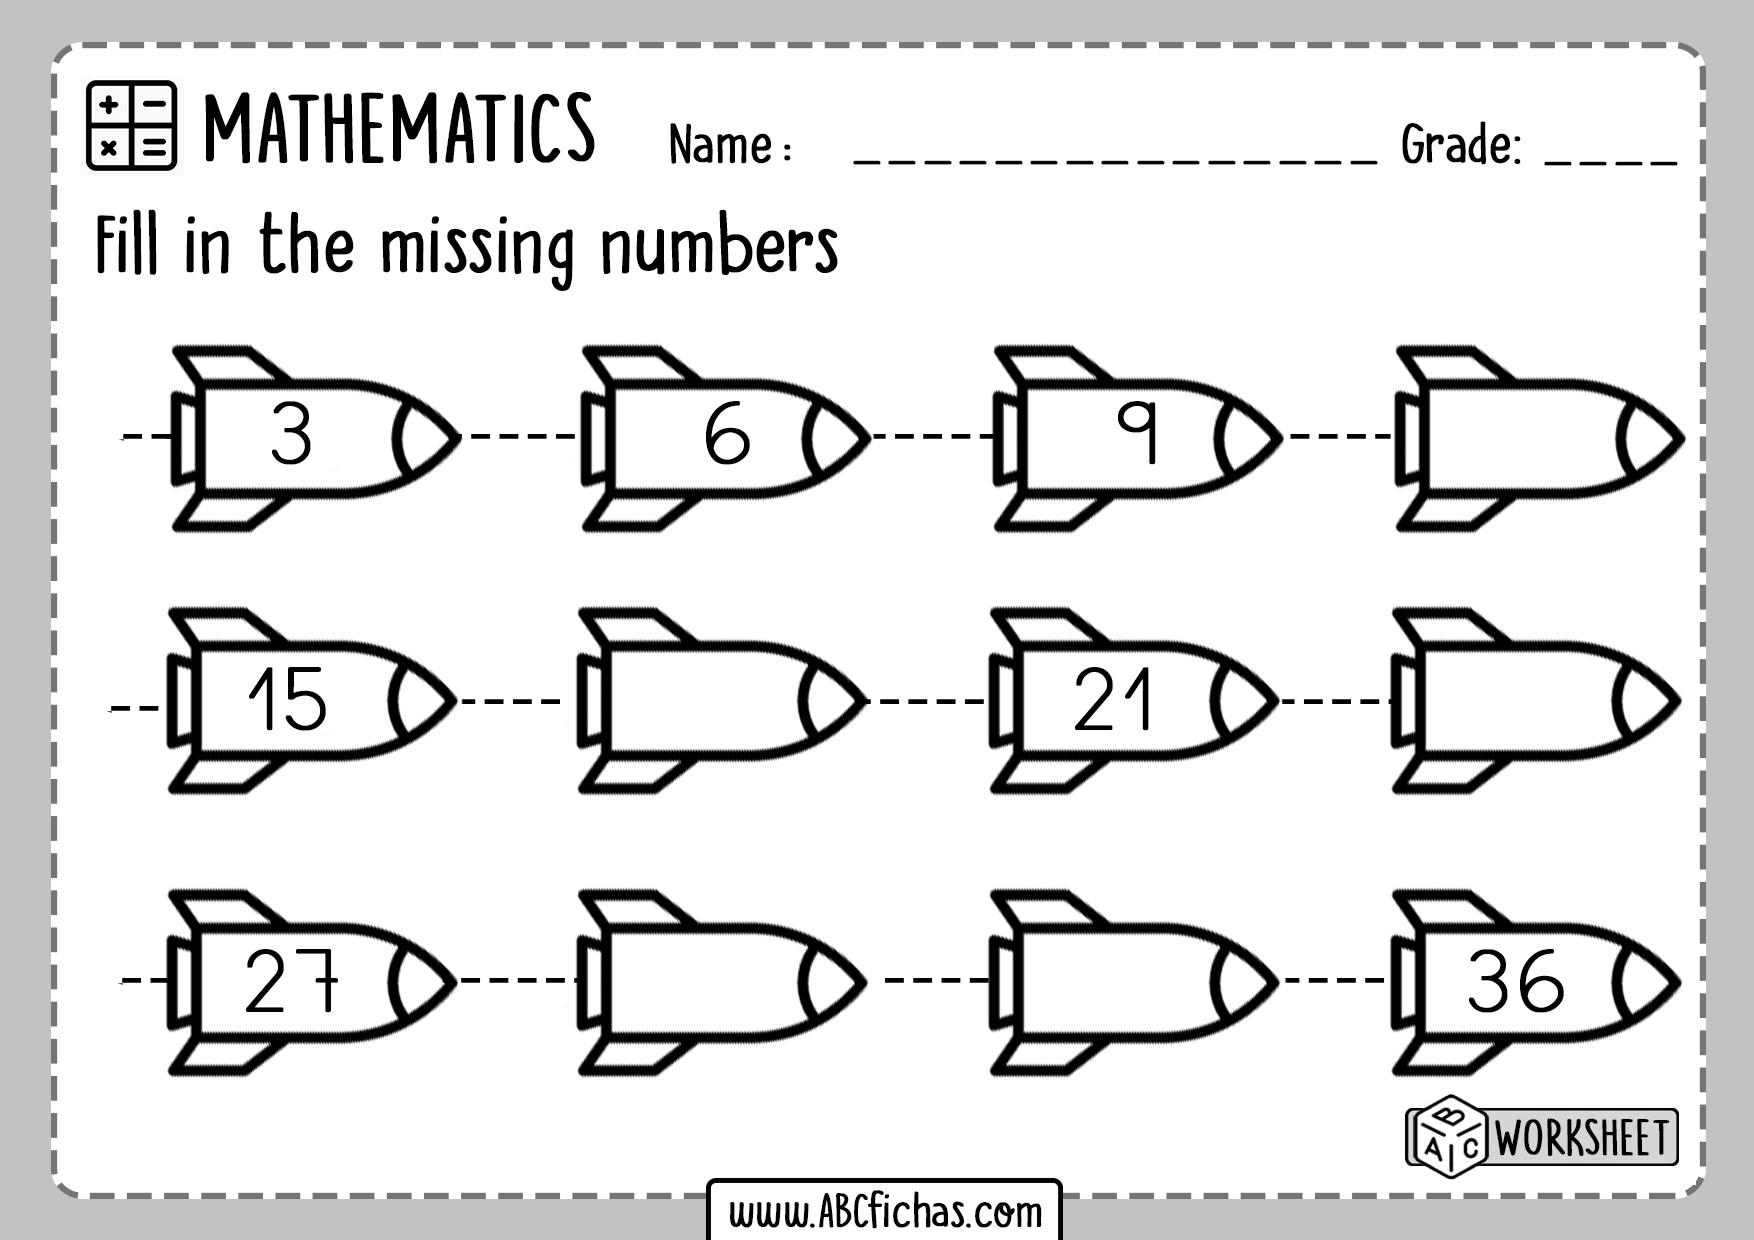 Number Sequence Worksheet